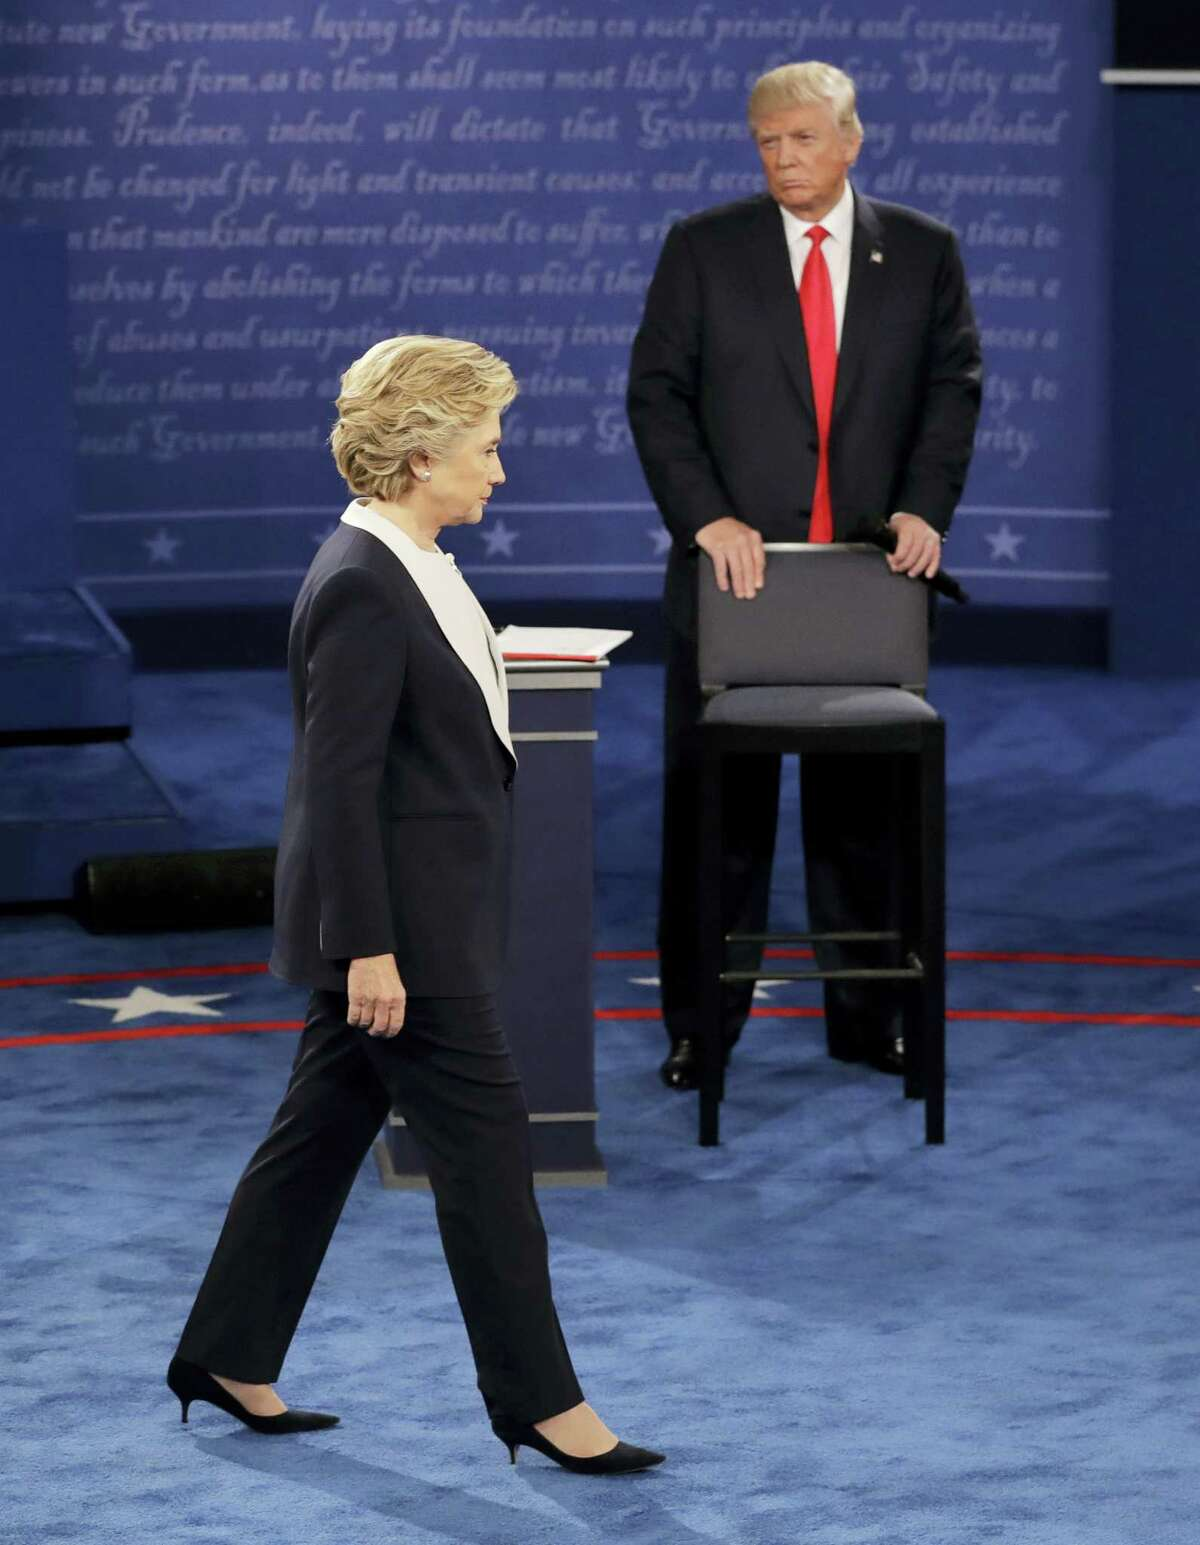 Republican presidential nominee Donald Trump watches Democratic presidential nominee Hillary Clinton during the second presidential debate at Washington University in St. Louis, Sunday, Oct. 9, 2016. (AP Photo/Patrick Semansky)